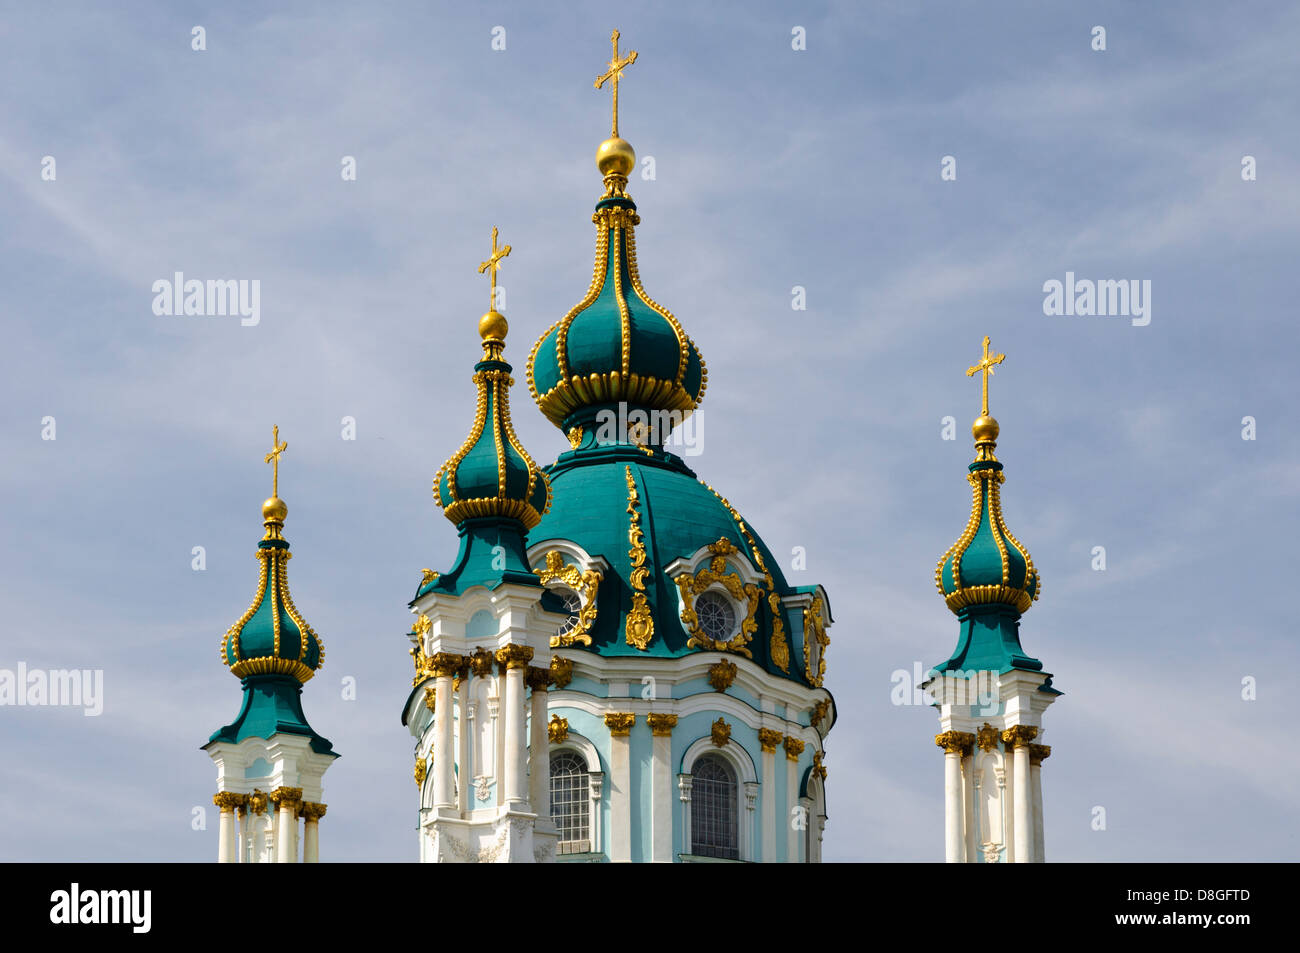 St. Andrew's Church, Kiew, Ukraine - Stock Image